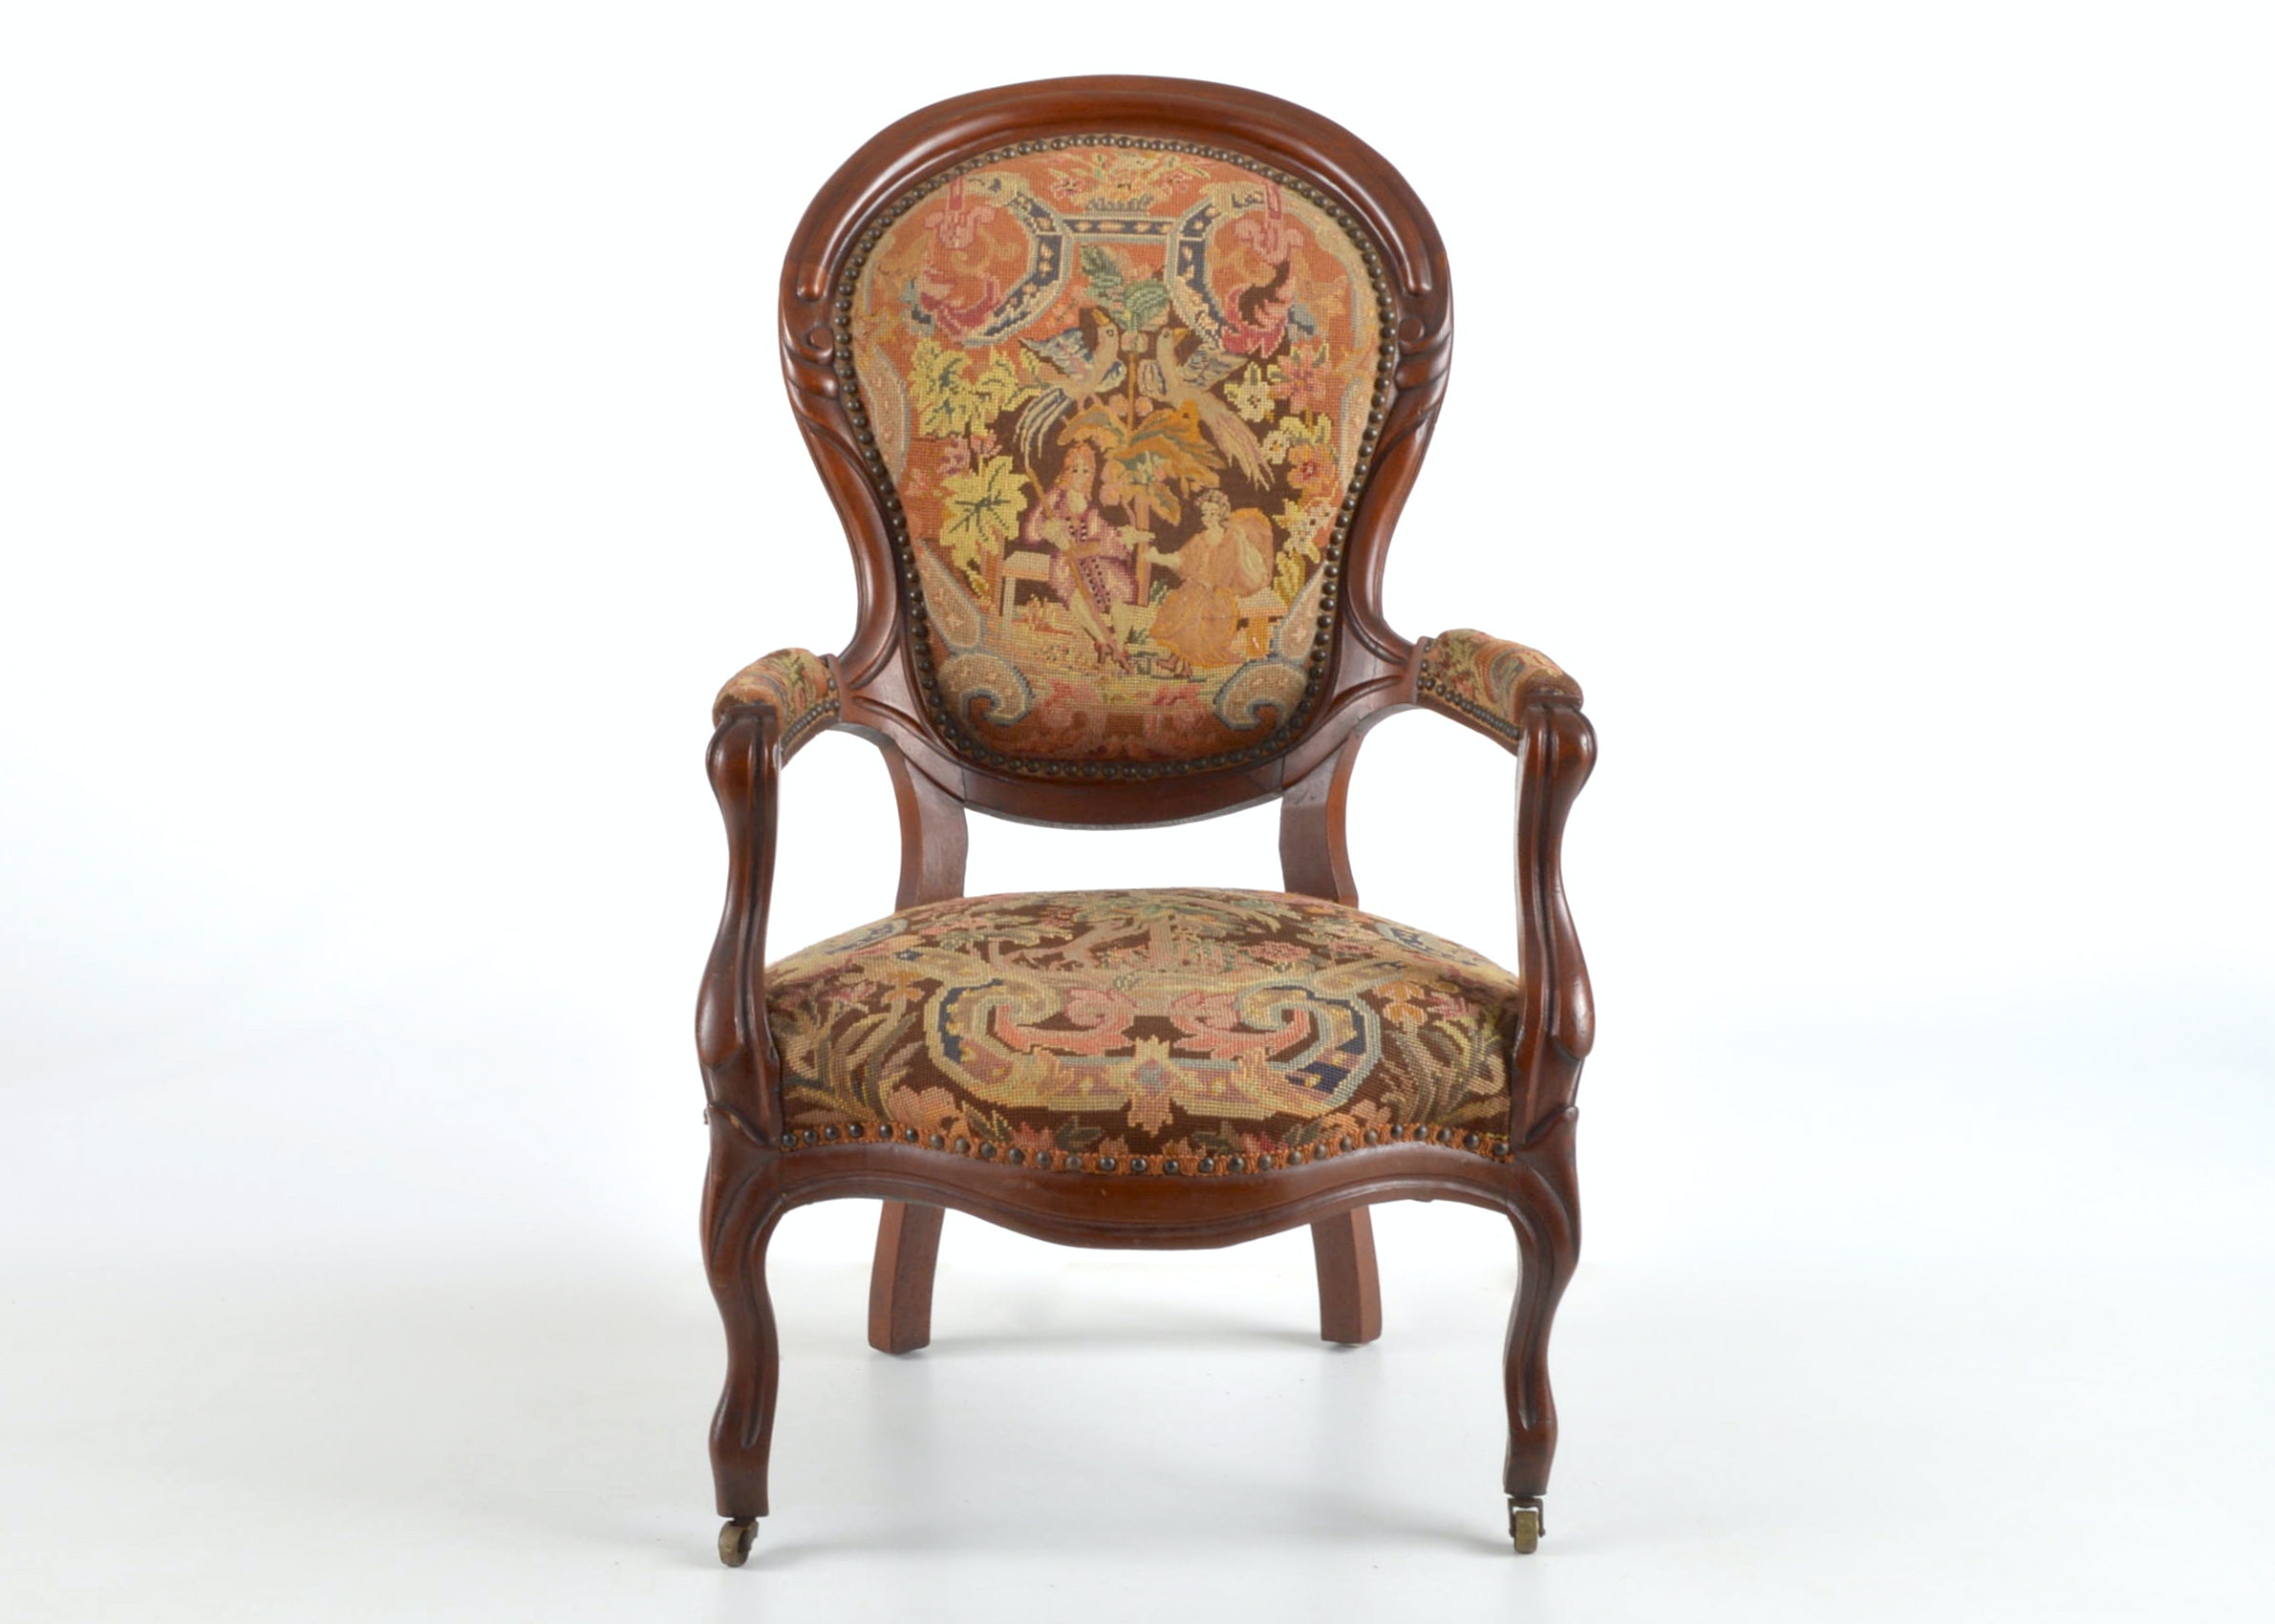 Antique Embroidered Chair